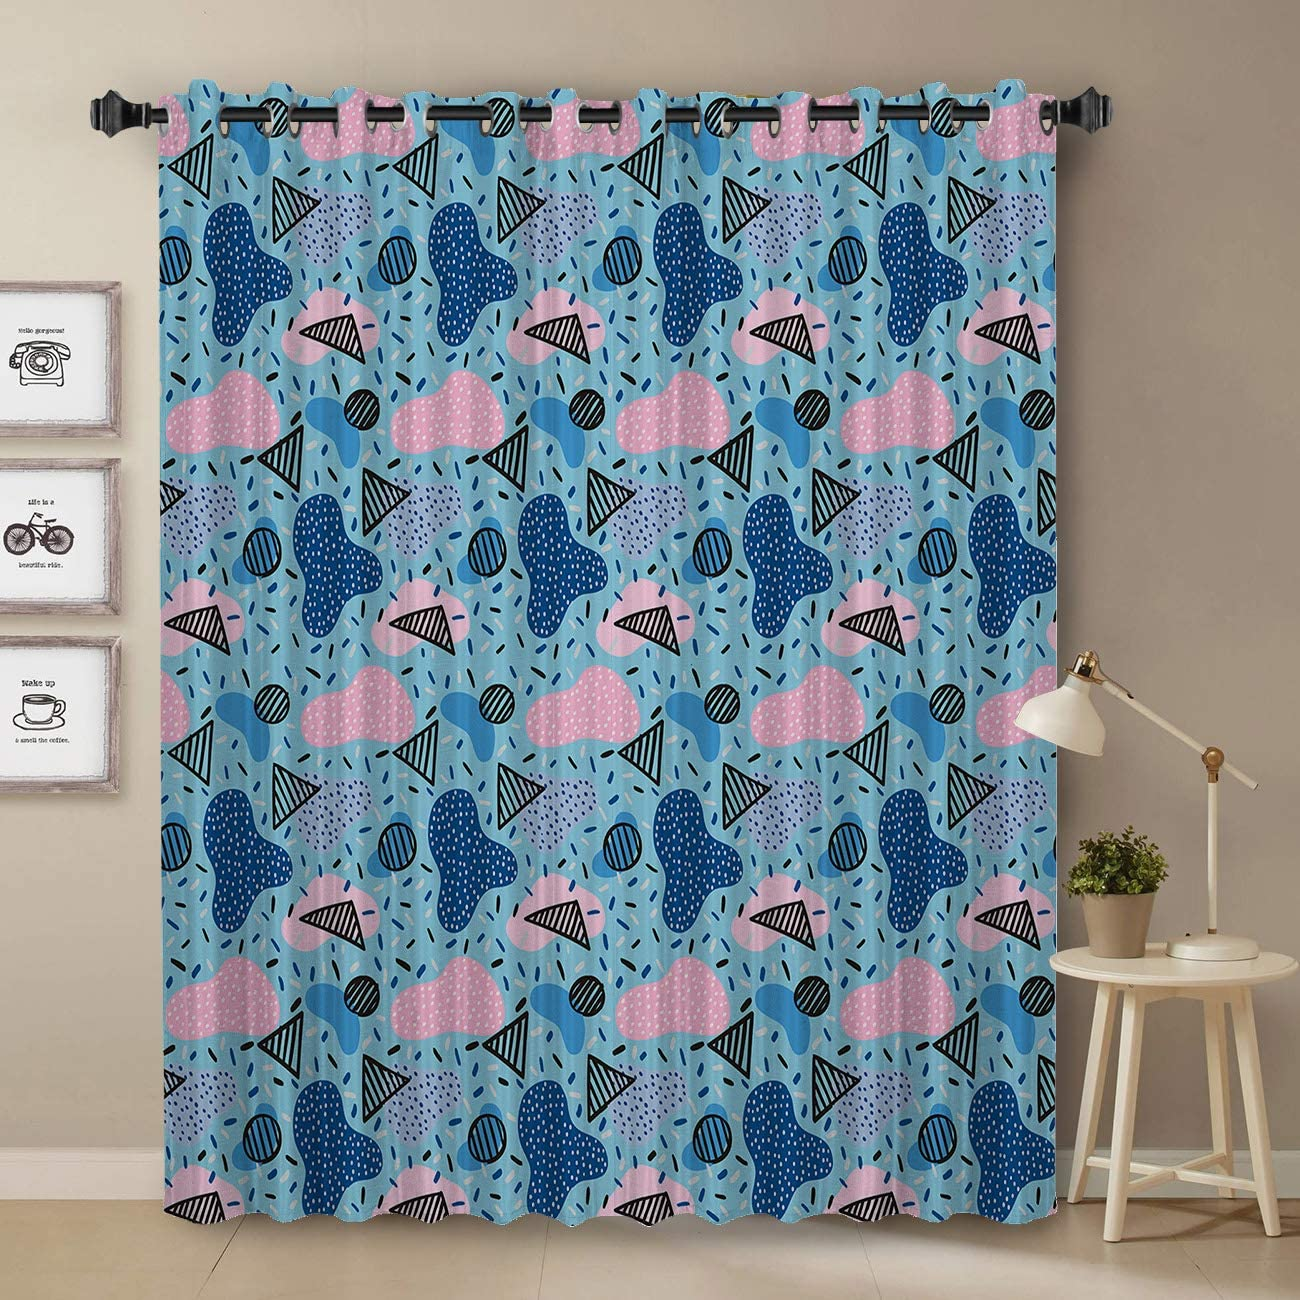 Darkening Blackout Free shipping on posting reviews Curtain Bargain for Bedroom - Tre Window Long 45 inch